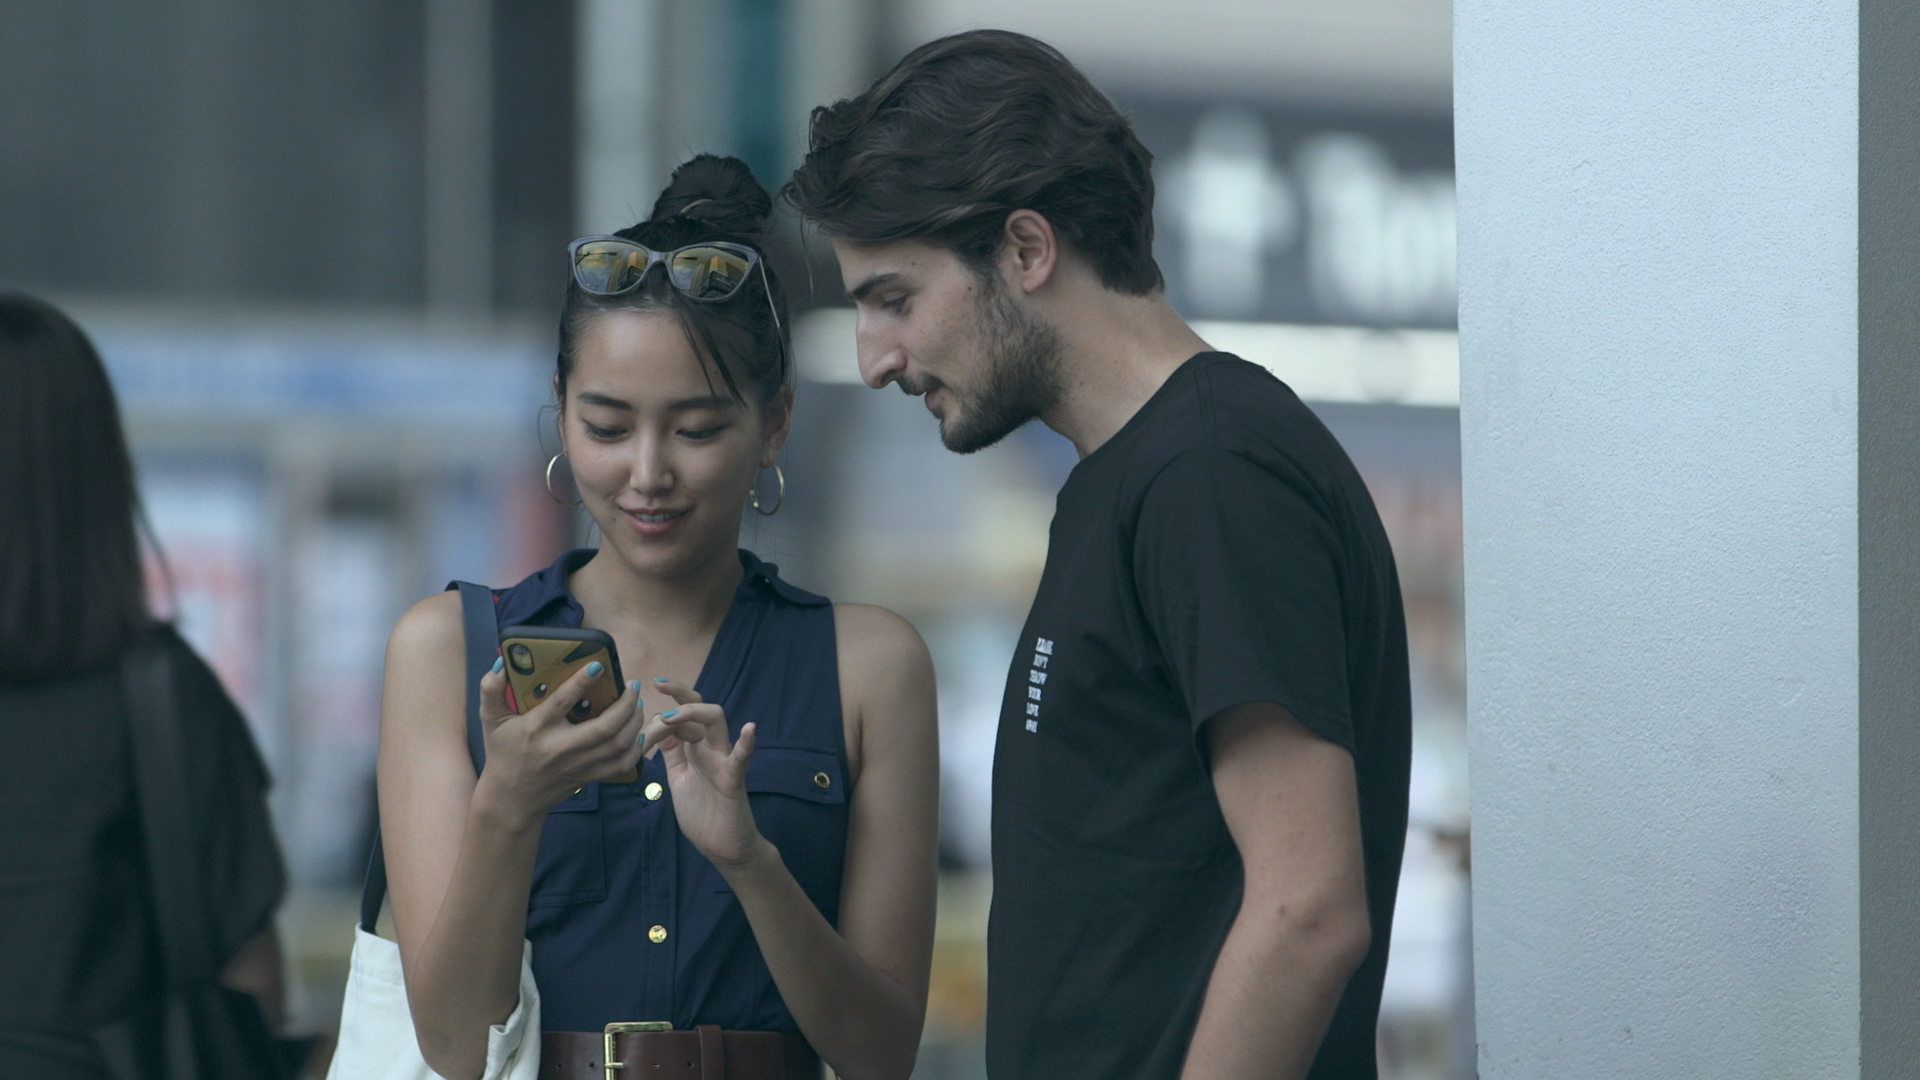 Perfect match: Haruka (left) and Peppe bond over a shared love of Pokemon Go and spend their afternoon catching virtual monsters on their phones on 'Terrace House Tokyo 2019-2020.' | © FUJI TELEVISION / EAST ENTERTAINMENT